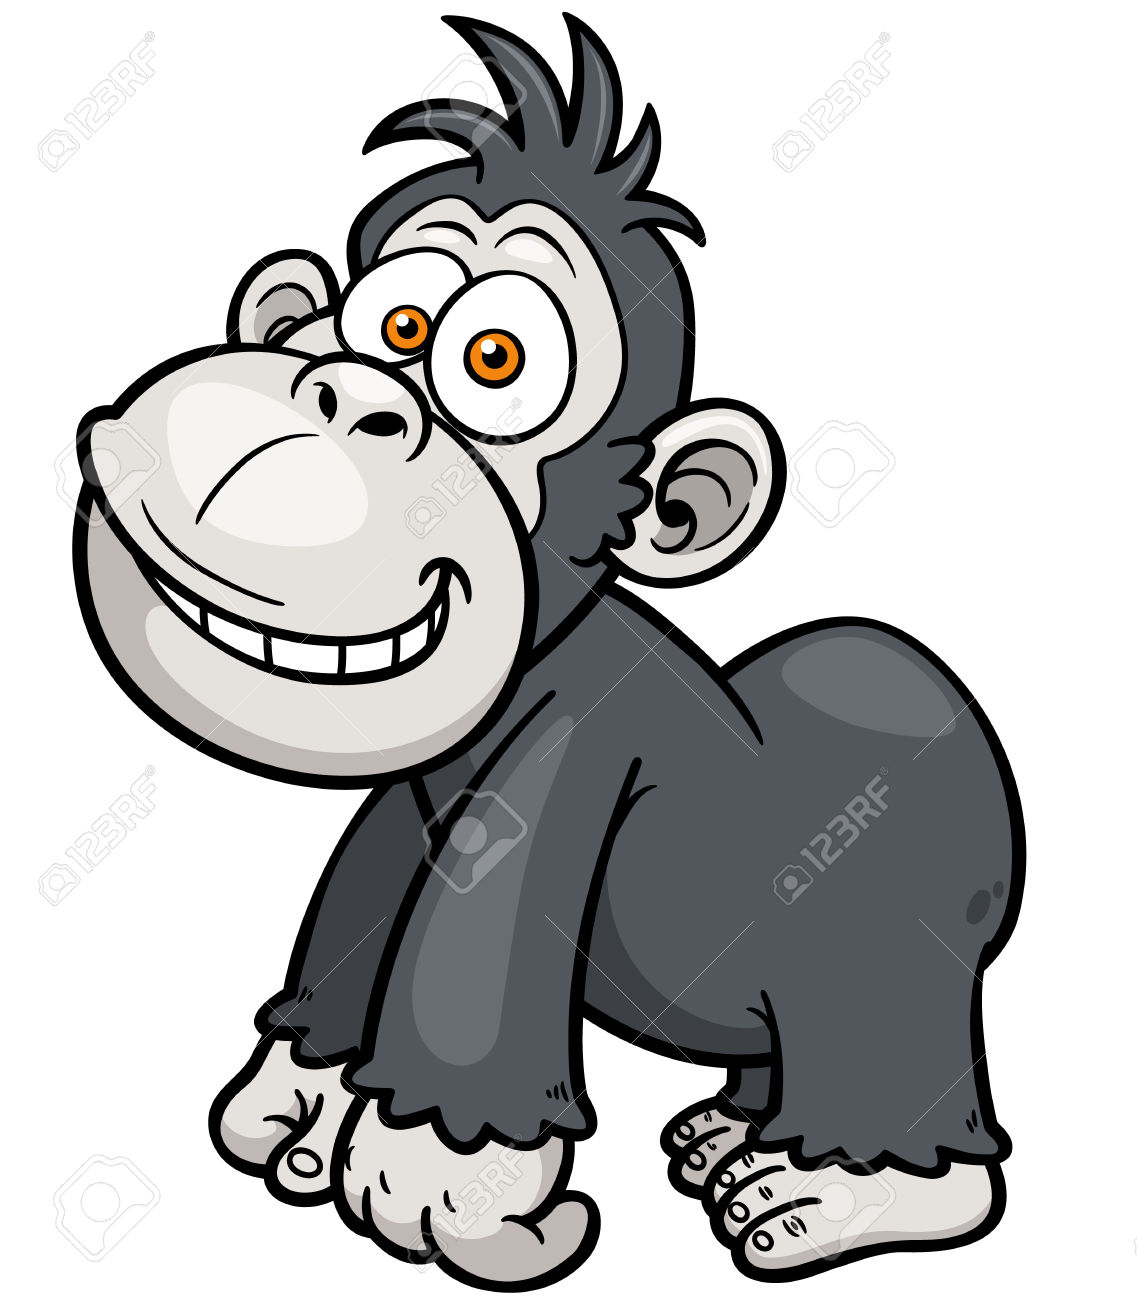 698 Silverback Stock Vector Illustration And Royalty Free.